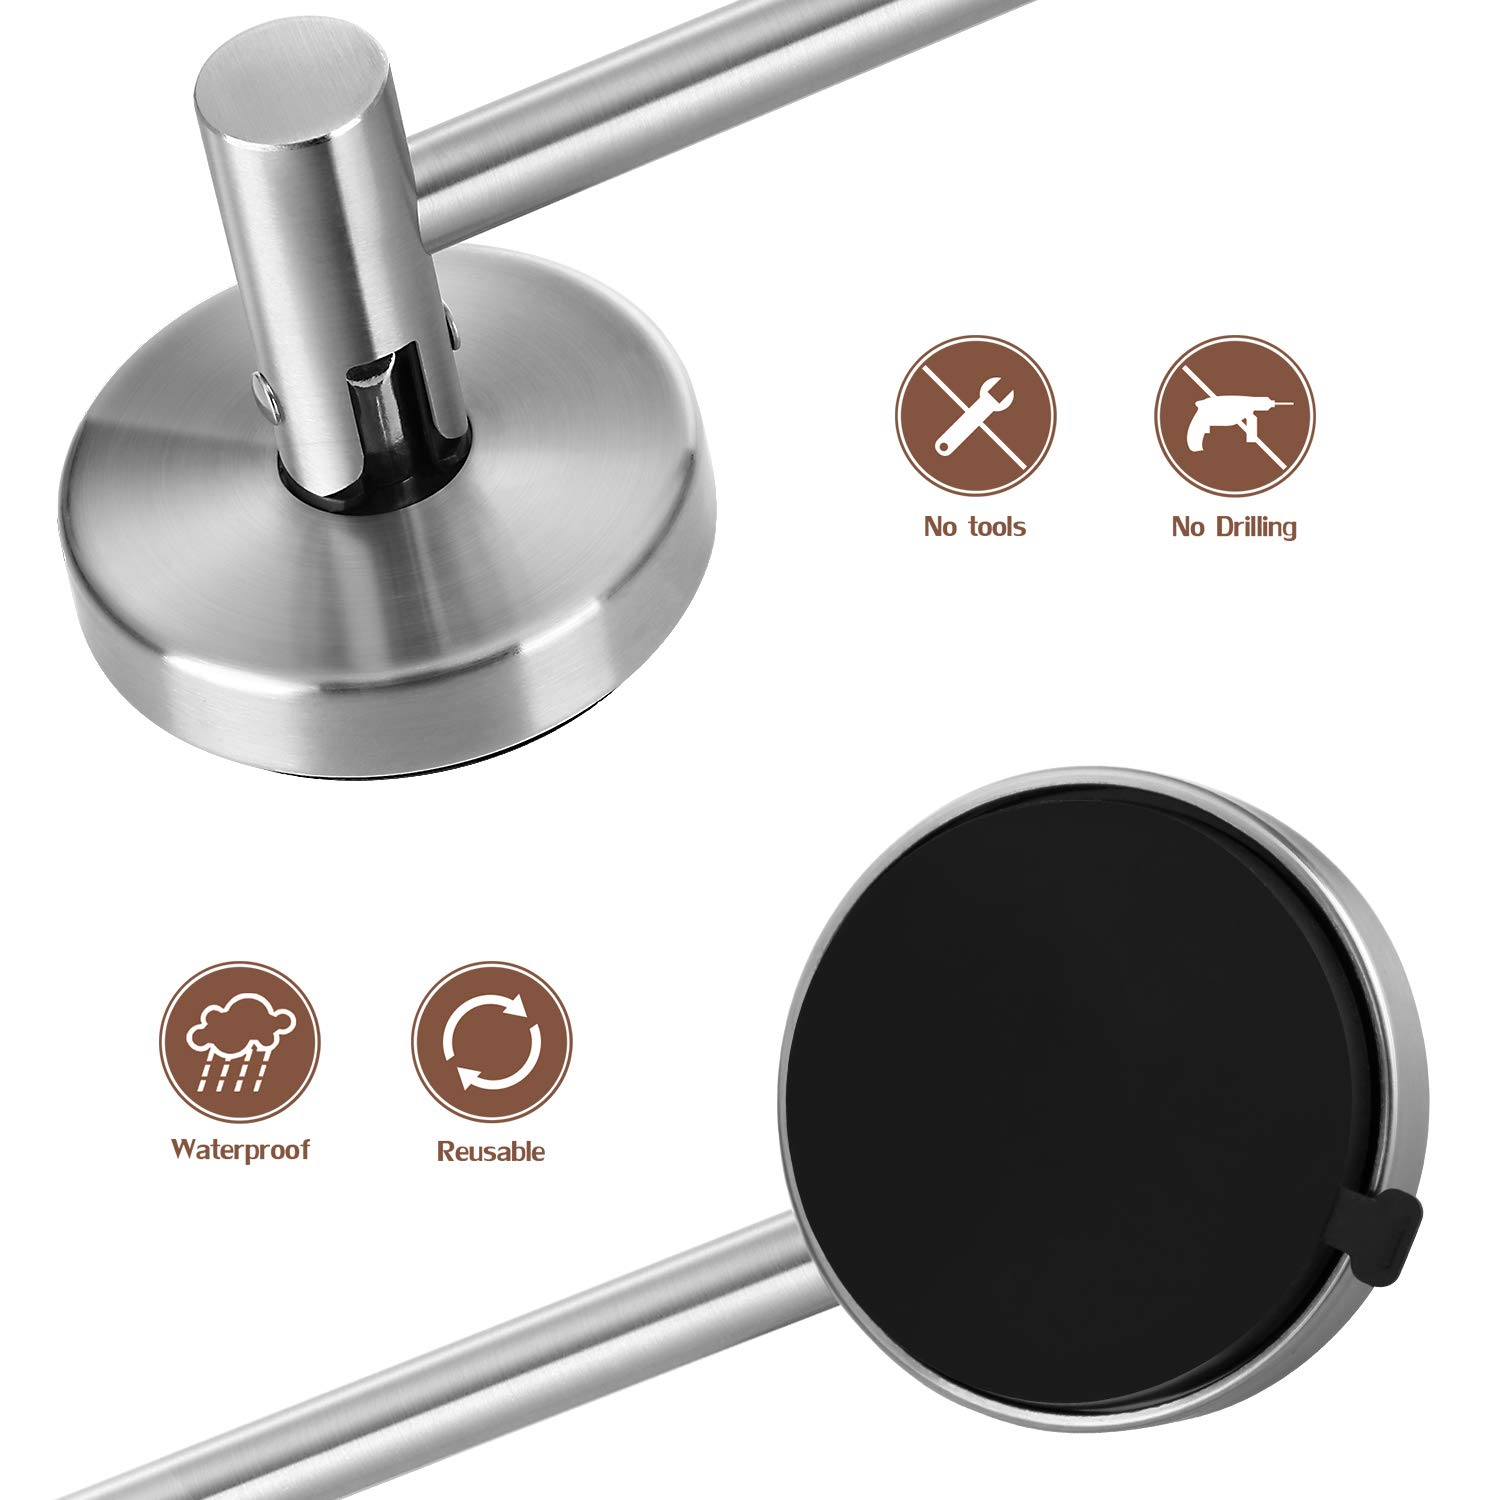 LUXEAR Suction Cup Towel Bar 24IN Powerful Removable Suction Cup Towel Shower Hook Vacuum Shower Mat Rod Shower Door Adhesive Towel Rack Bathroom Towel Holder Stainless with 8 Hooks.